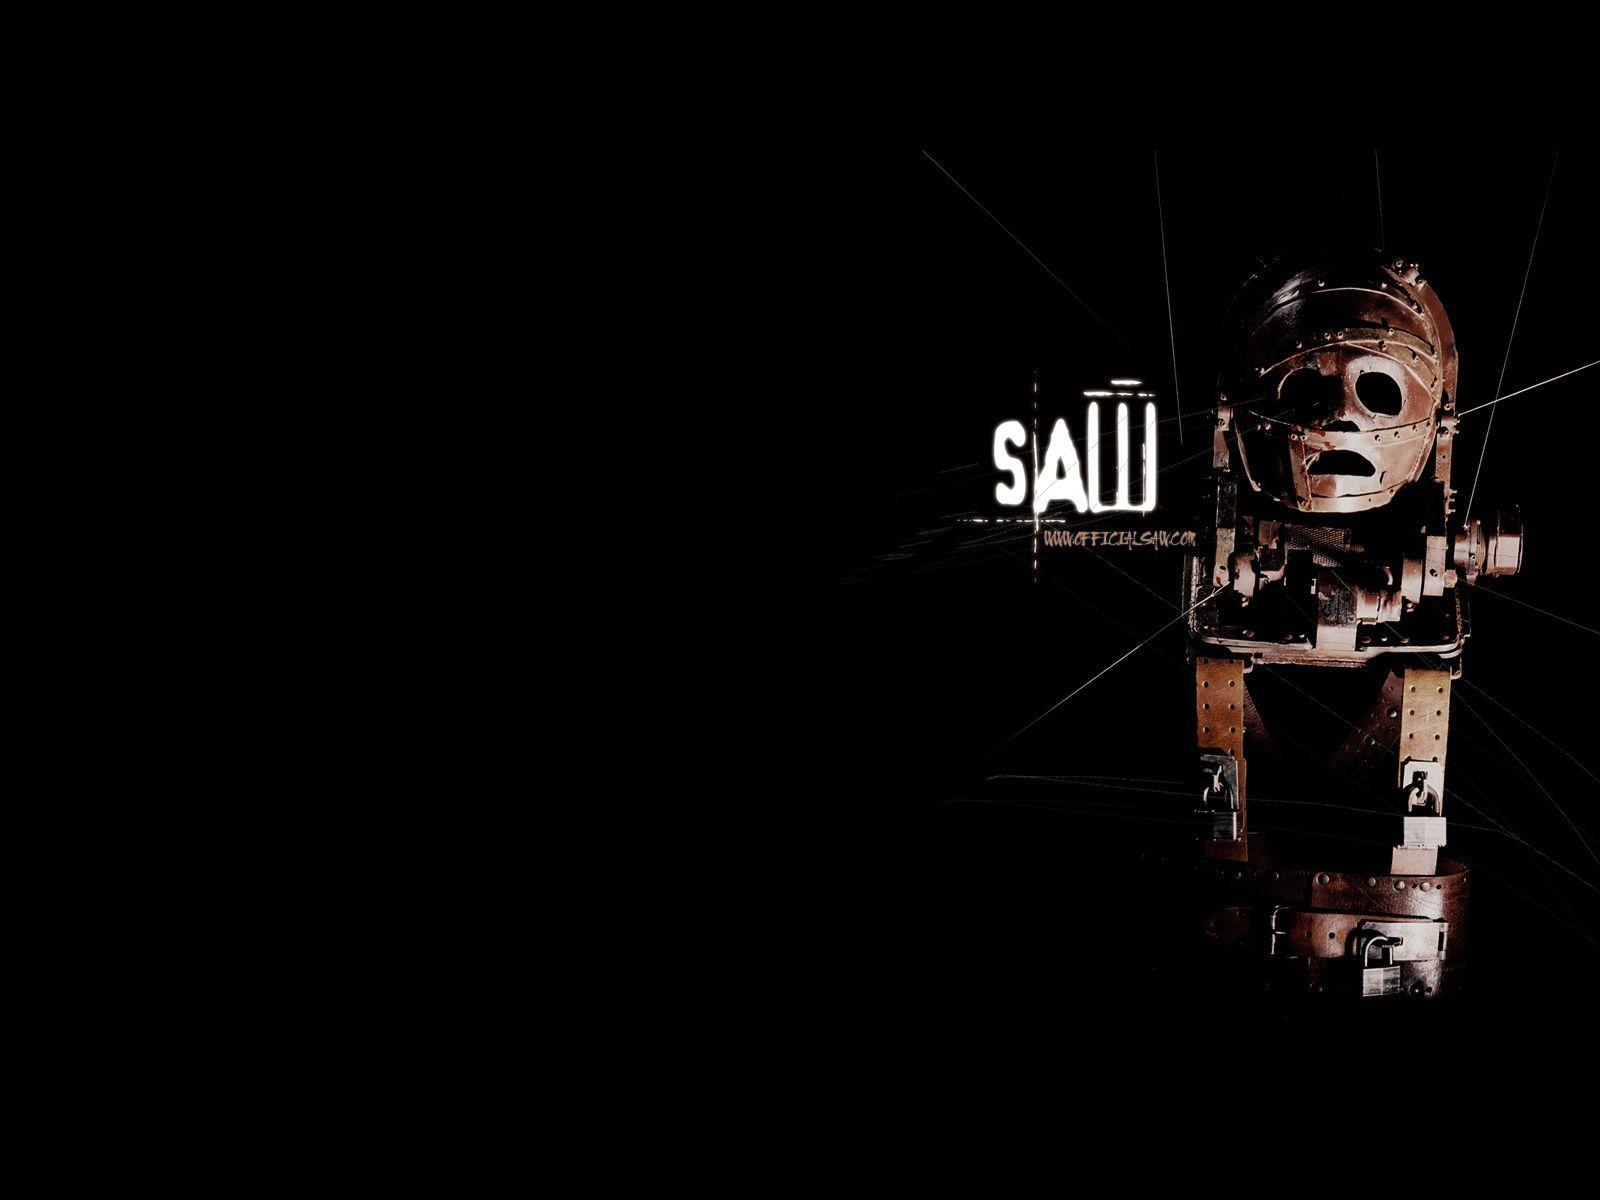 Saw Movie Wallpapers Wallpaper Cave